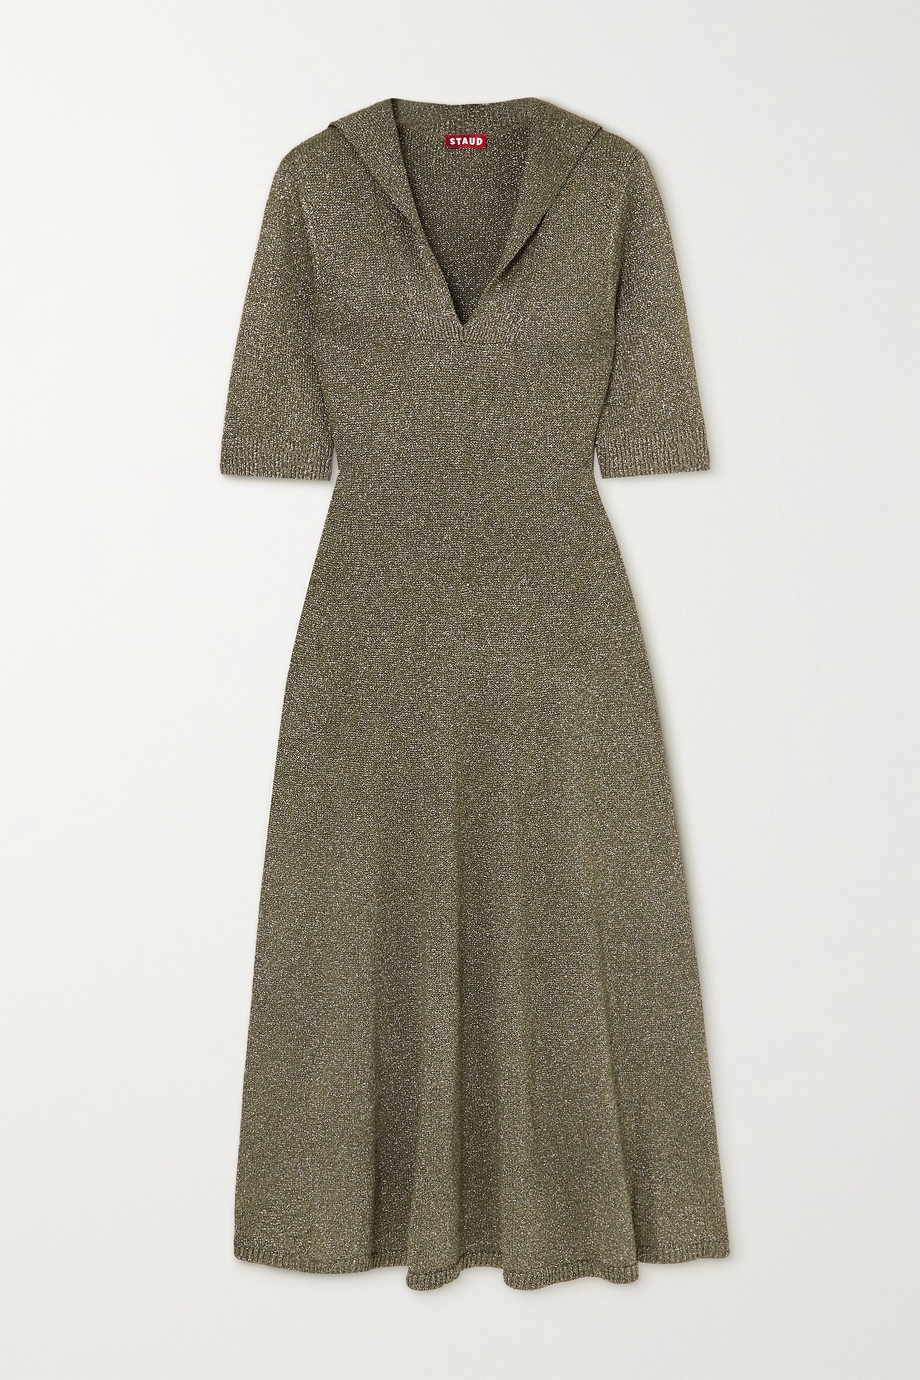 STAUD Breck metallic knitted dress